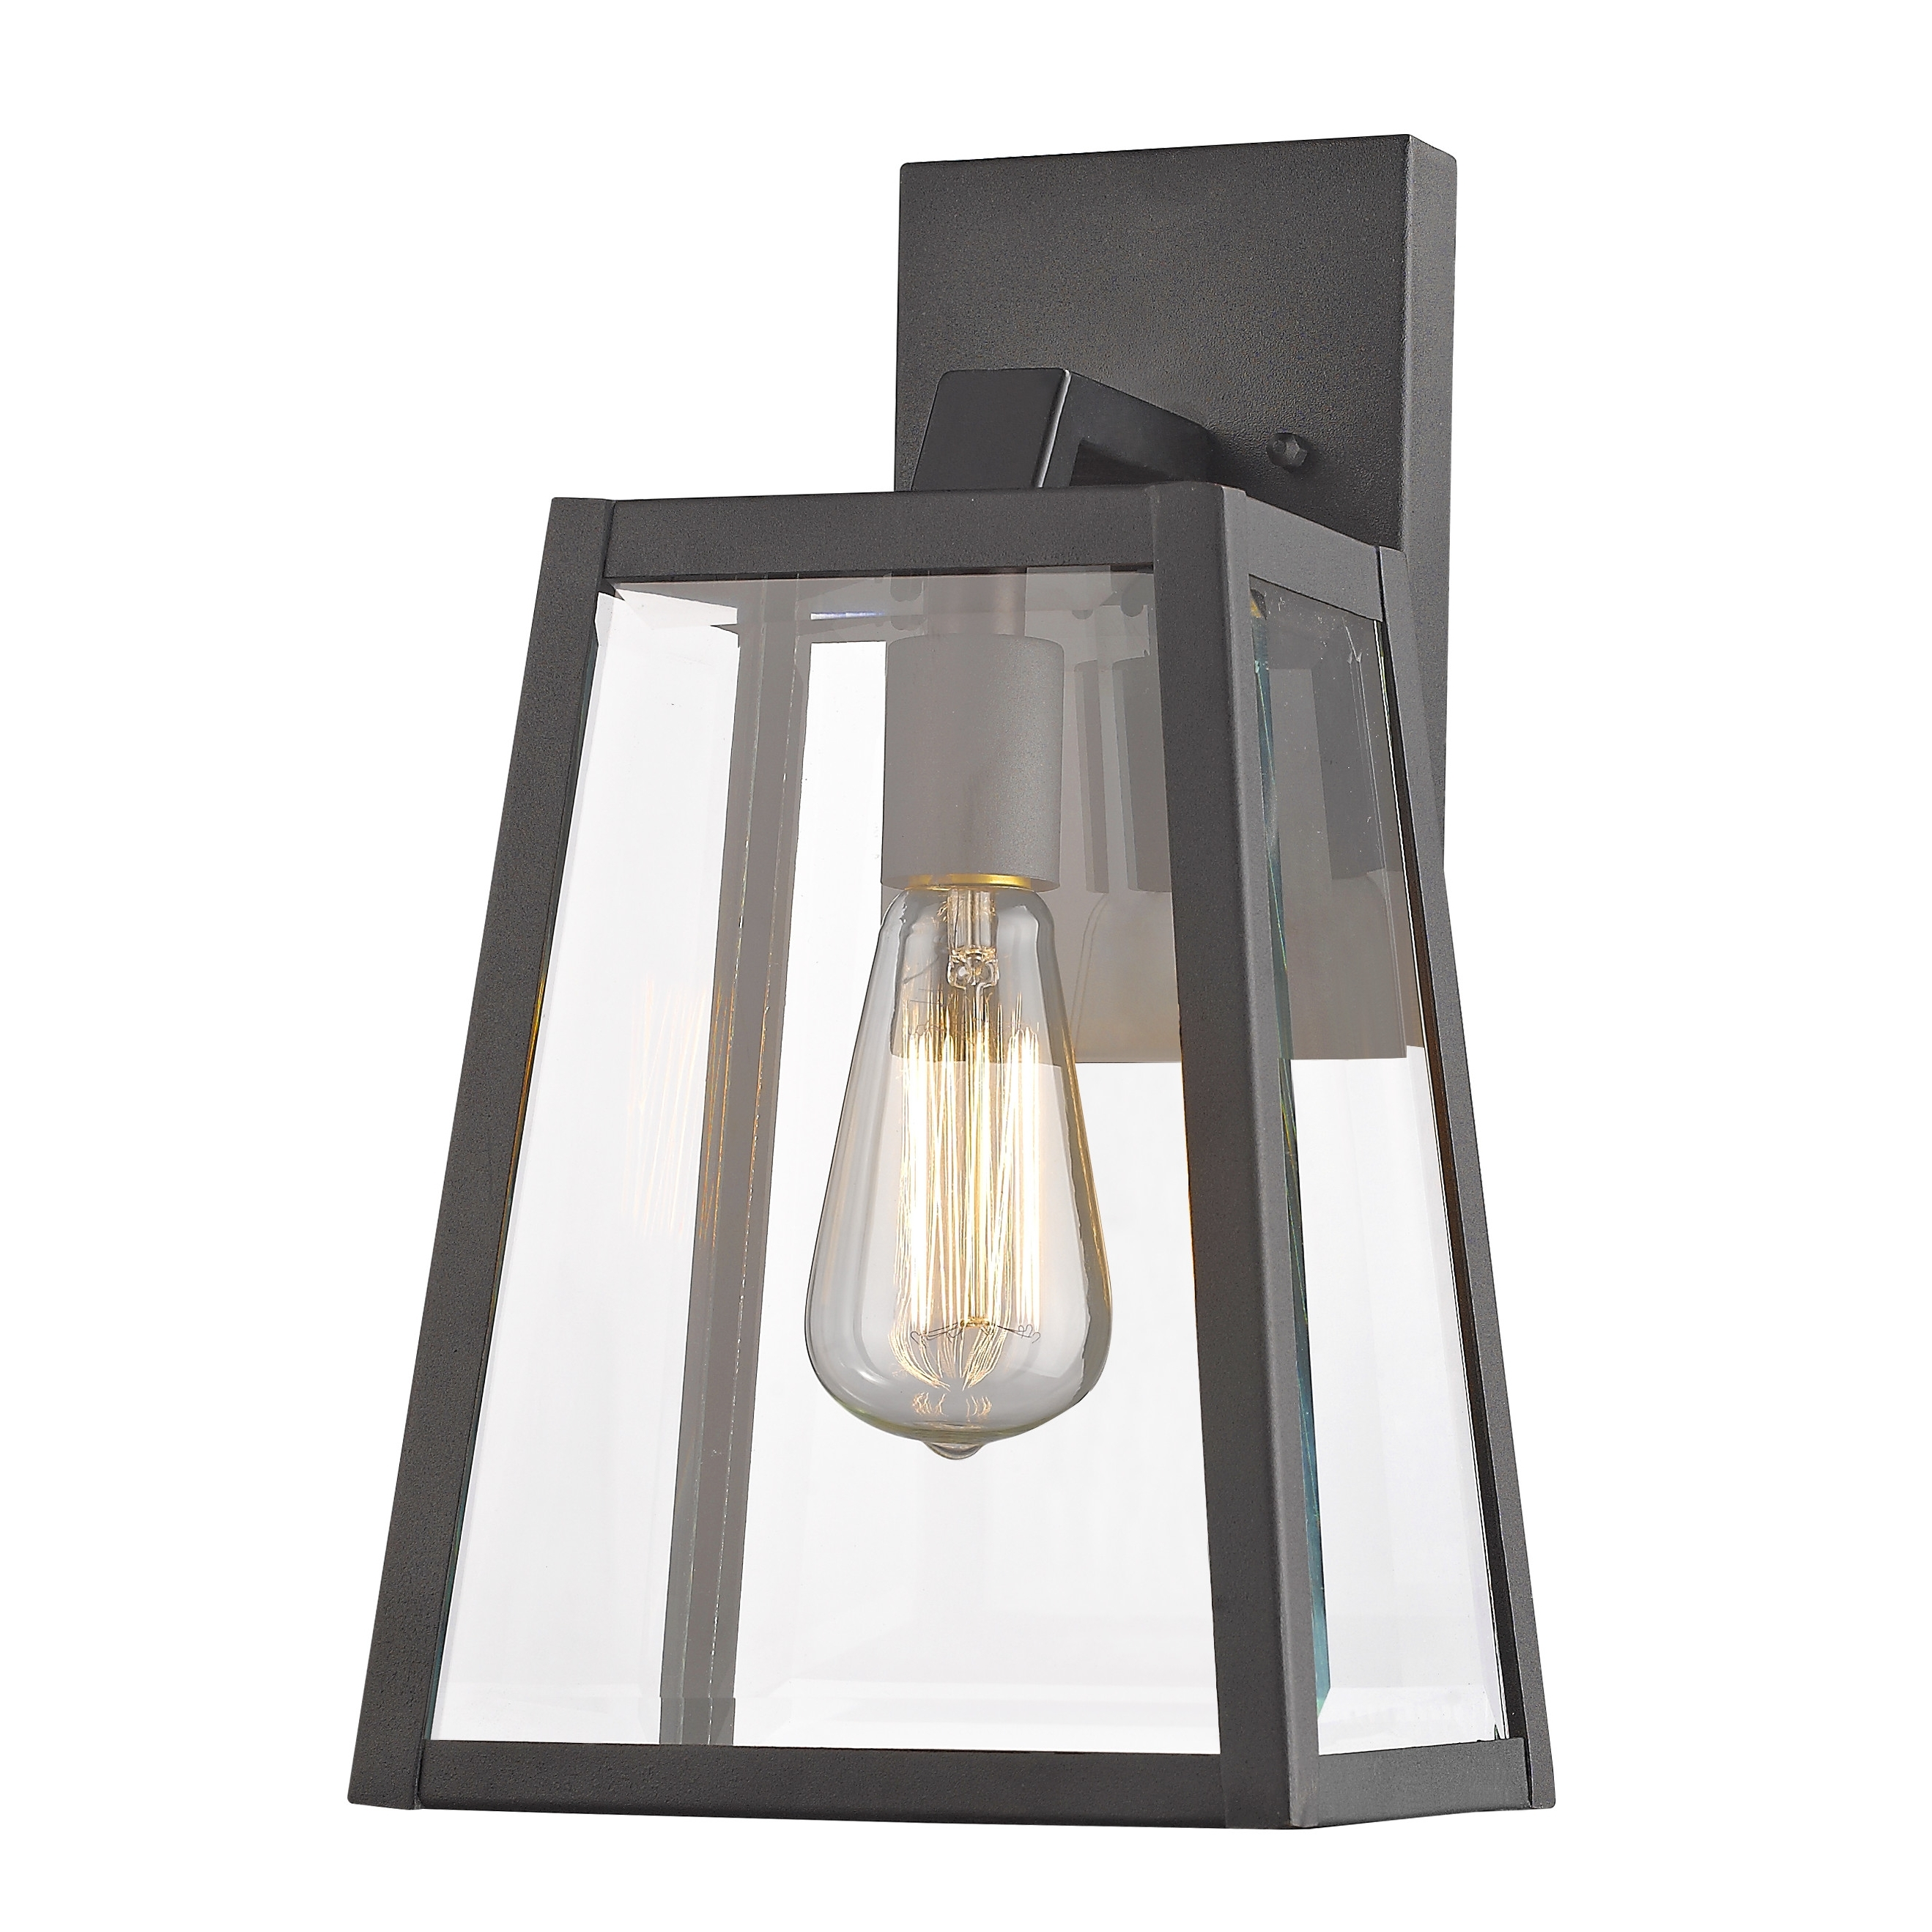 Most Recent Outdoor Lighting Fixtures At Wayfair Throughout Light : Barn Brown Wall Mounted Home Depot Solar Lights For Outdoor (View 7 of 20)